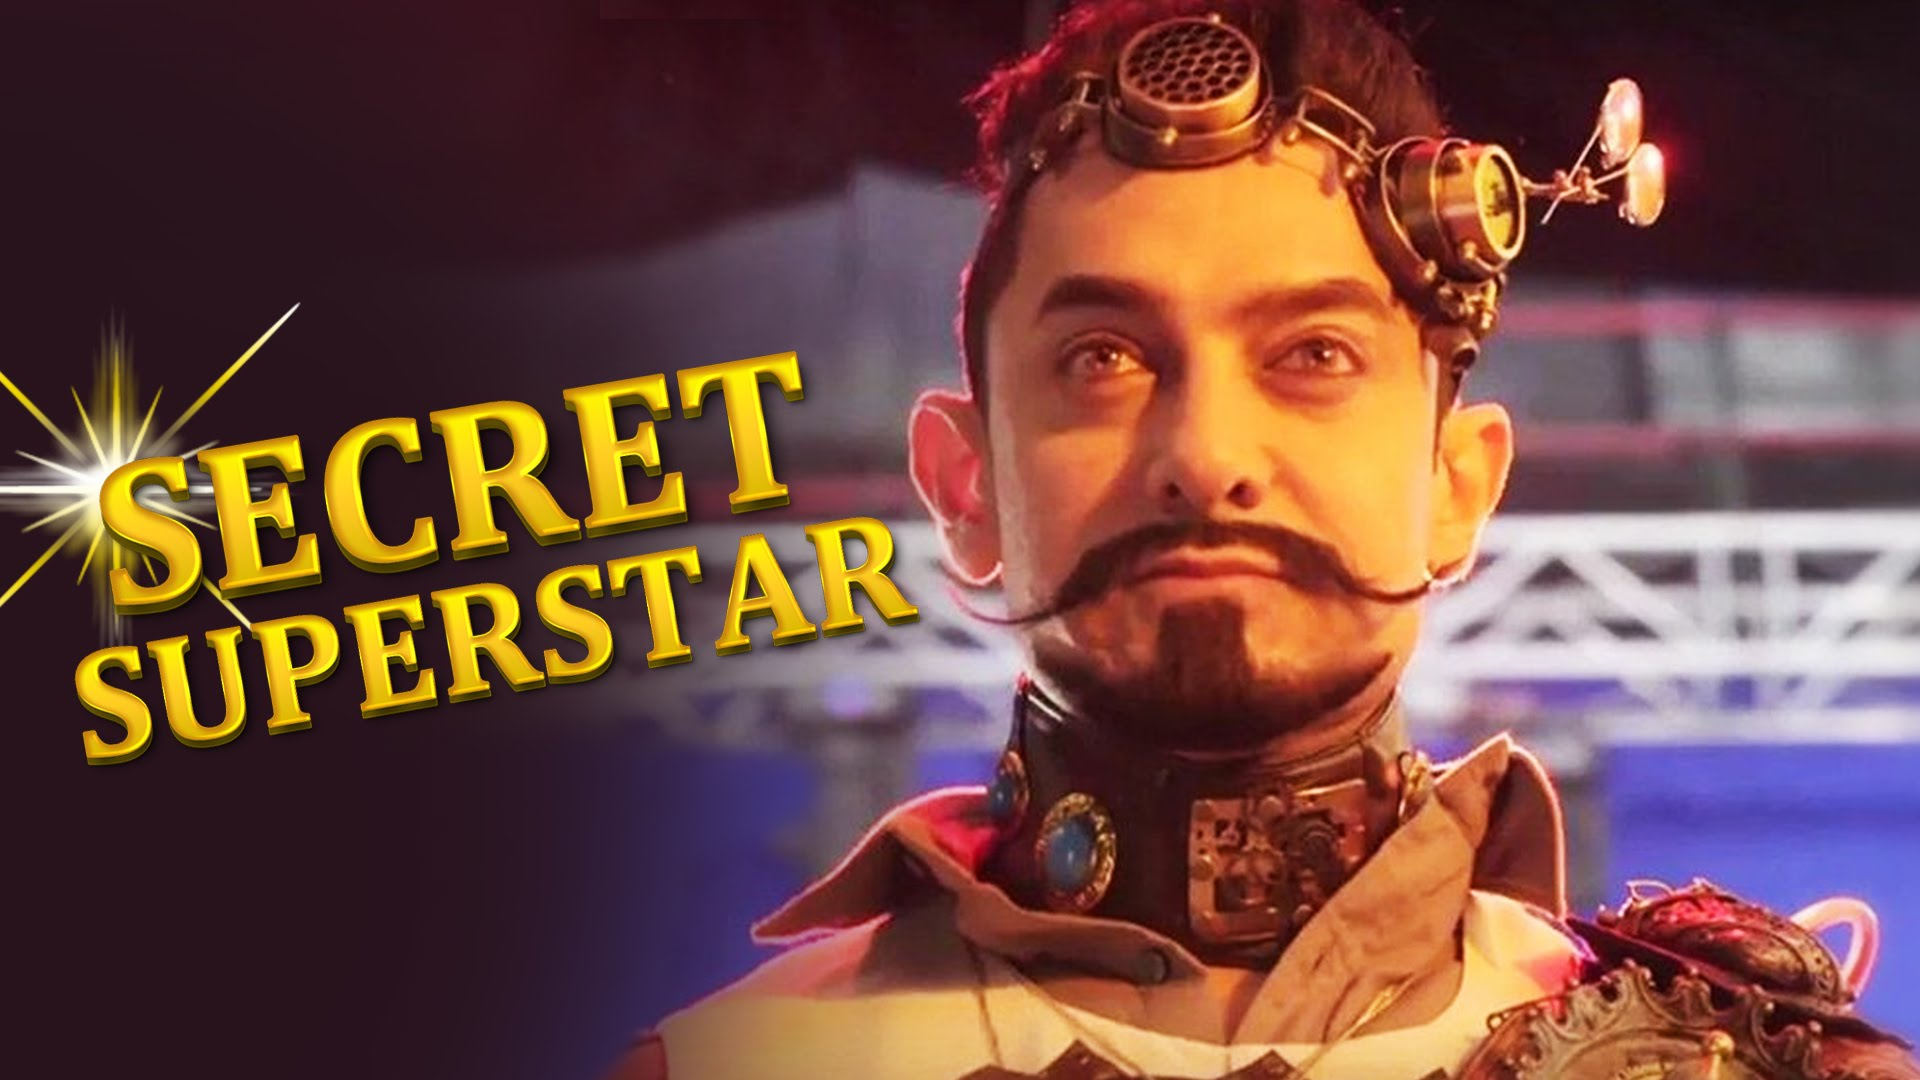 Secret Superstar Movie Review: Story about Dreams, Love, Friendship and much more